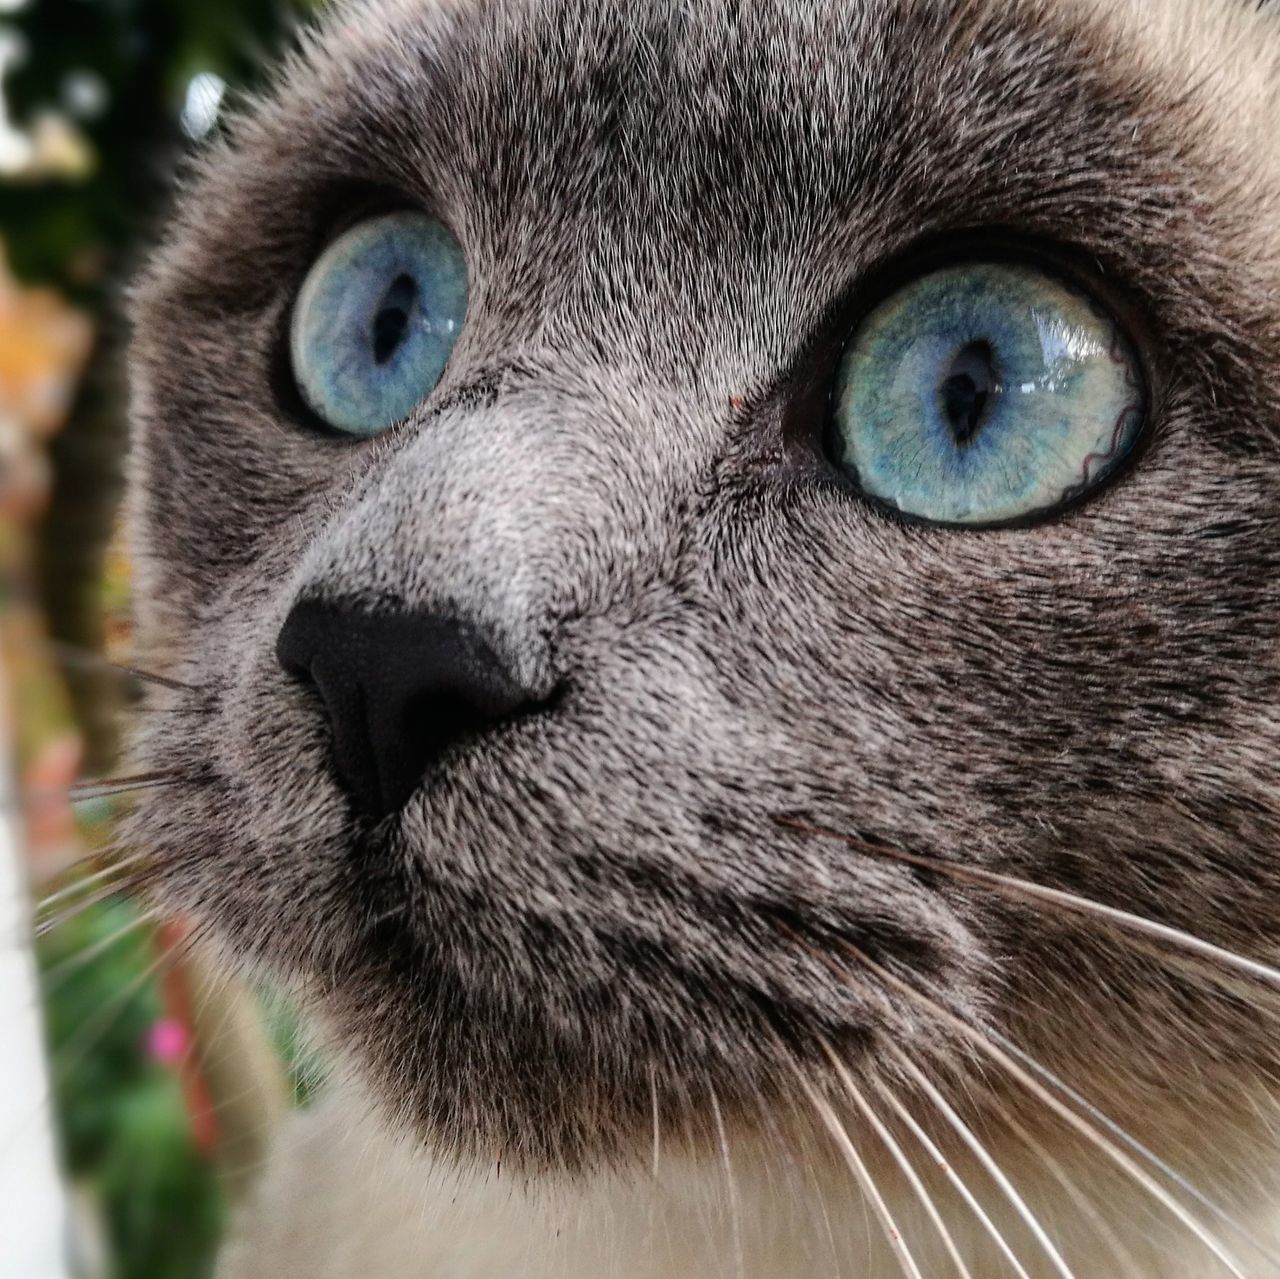 💙💙 One Animal Portrait Looking At Camera Animal Head  Animal Themes Animal Eye Animals In The Wild Cats Of EyeEm Cats Eyeblue